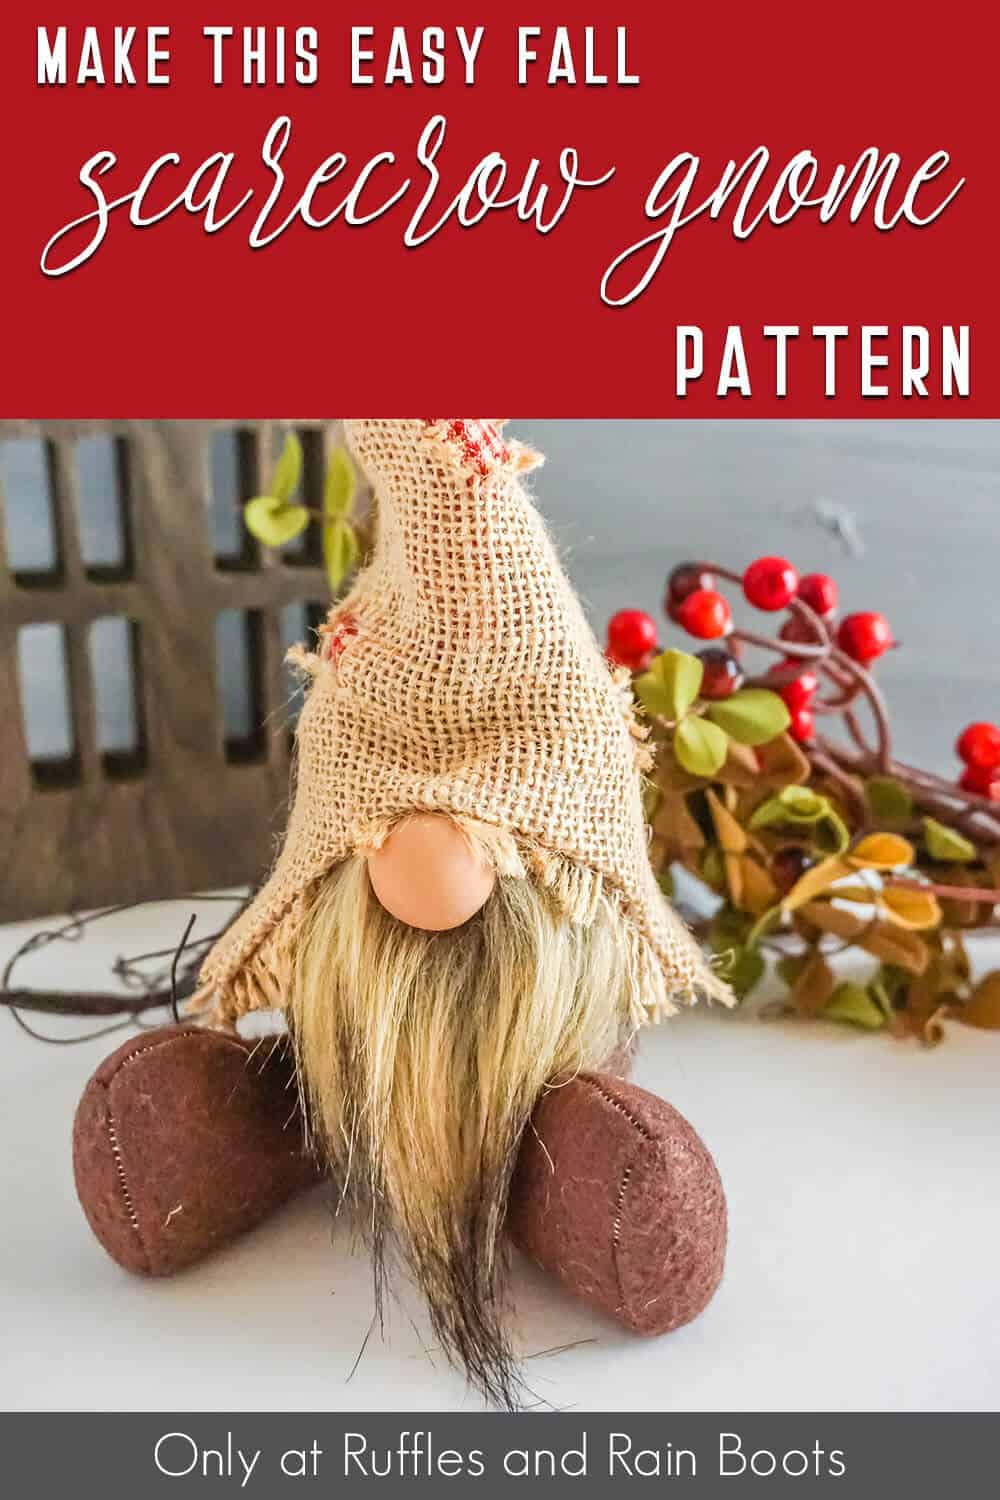 scarecrow gnome pattern set with text which reads make this easy fall scarecrow gnome pattern